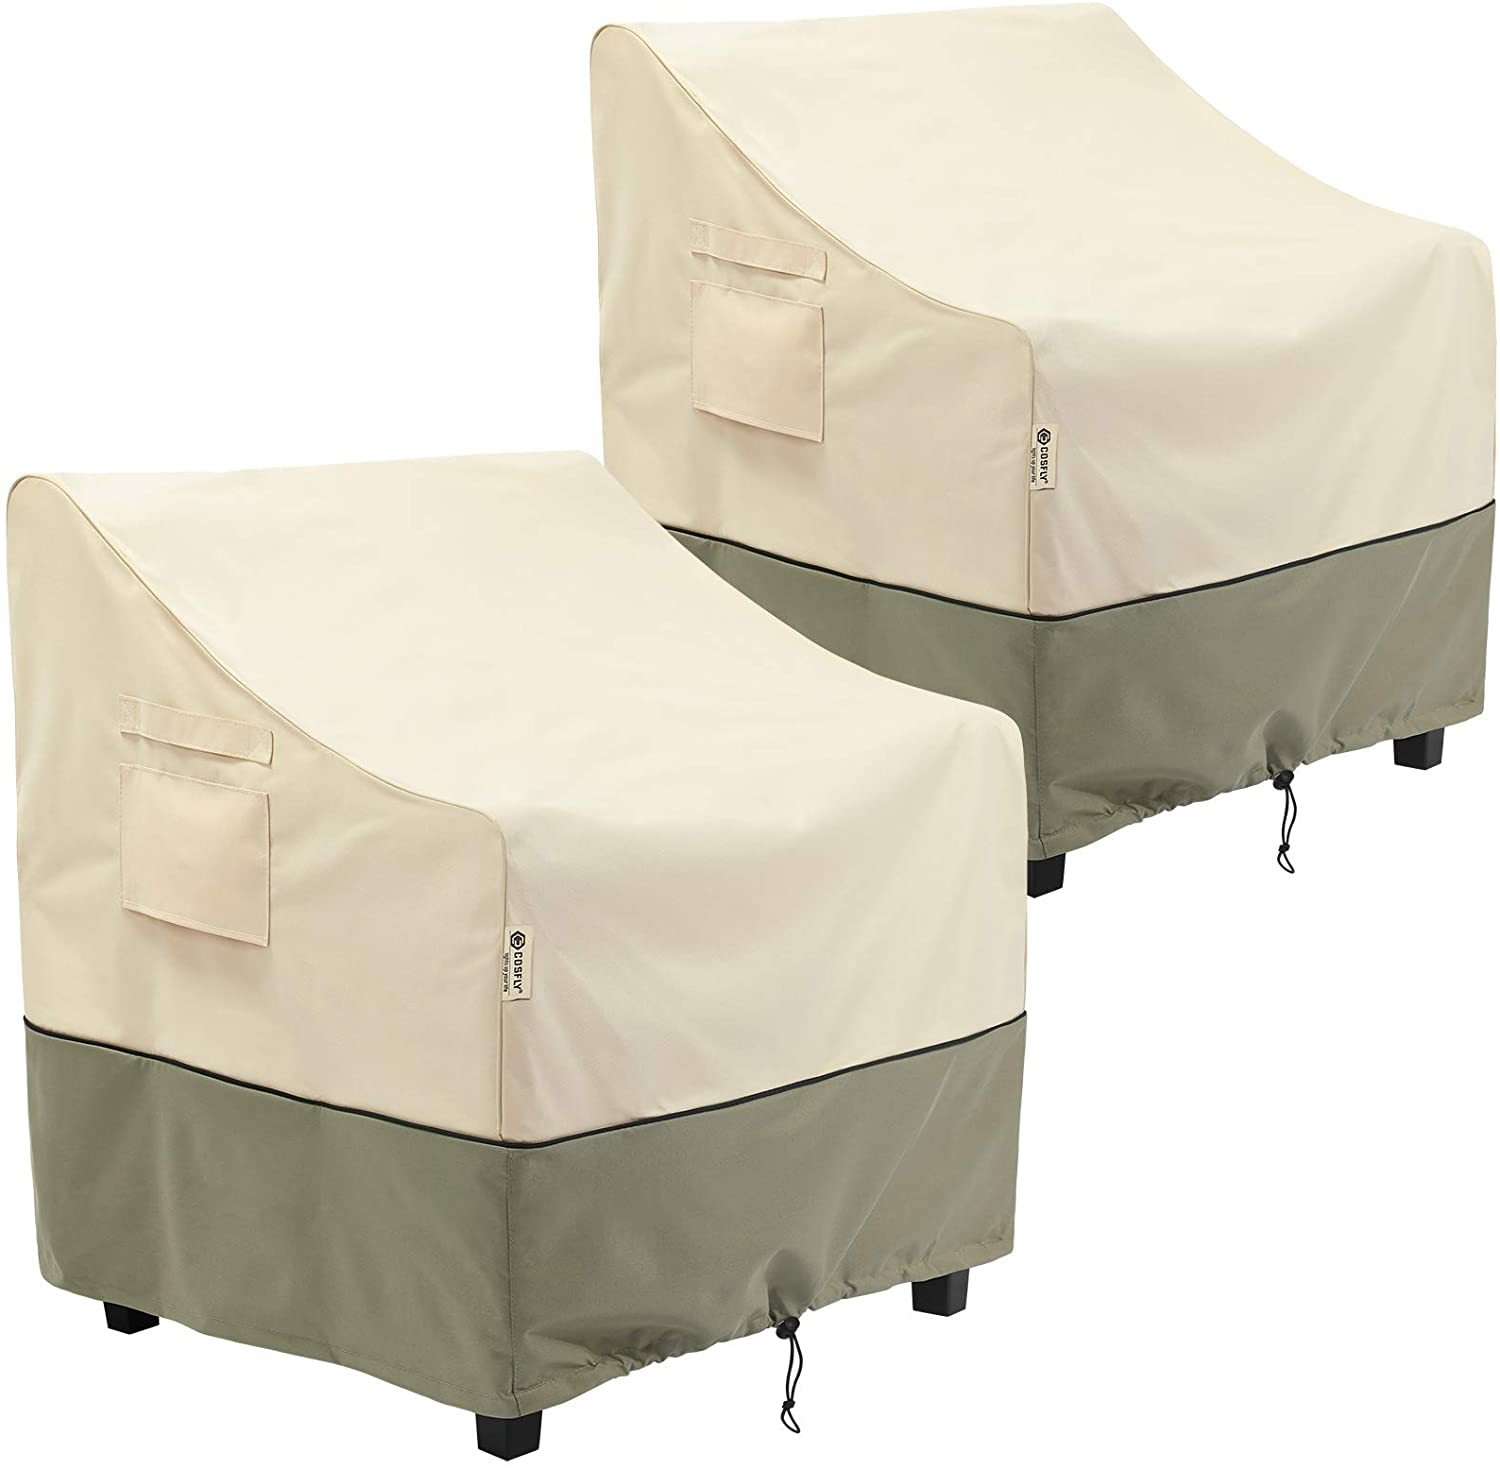 COSFLY Outdoor Furniture Patio Chair Covers Waterproof Clearance, Lounge Deep Seat Cover, Lawn Furnitures Covers Fits up to 29W x 30D x 36H inches(2 Pack)